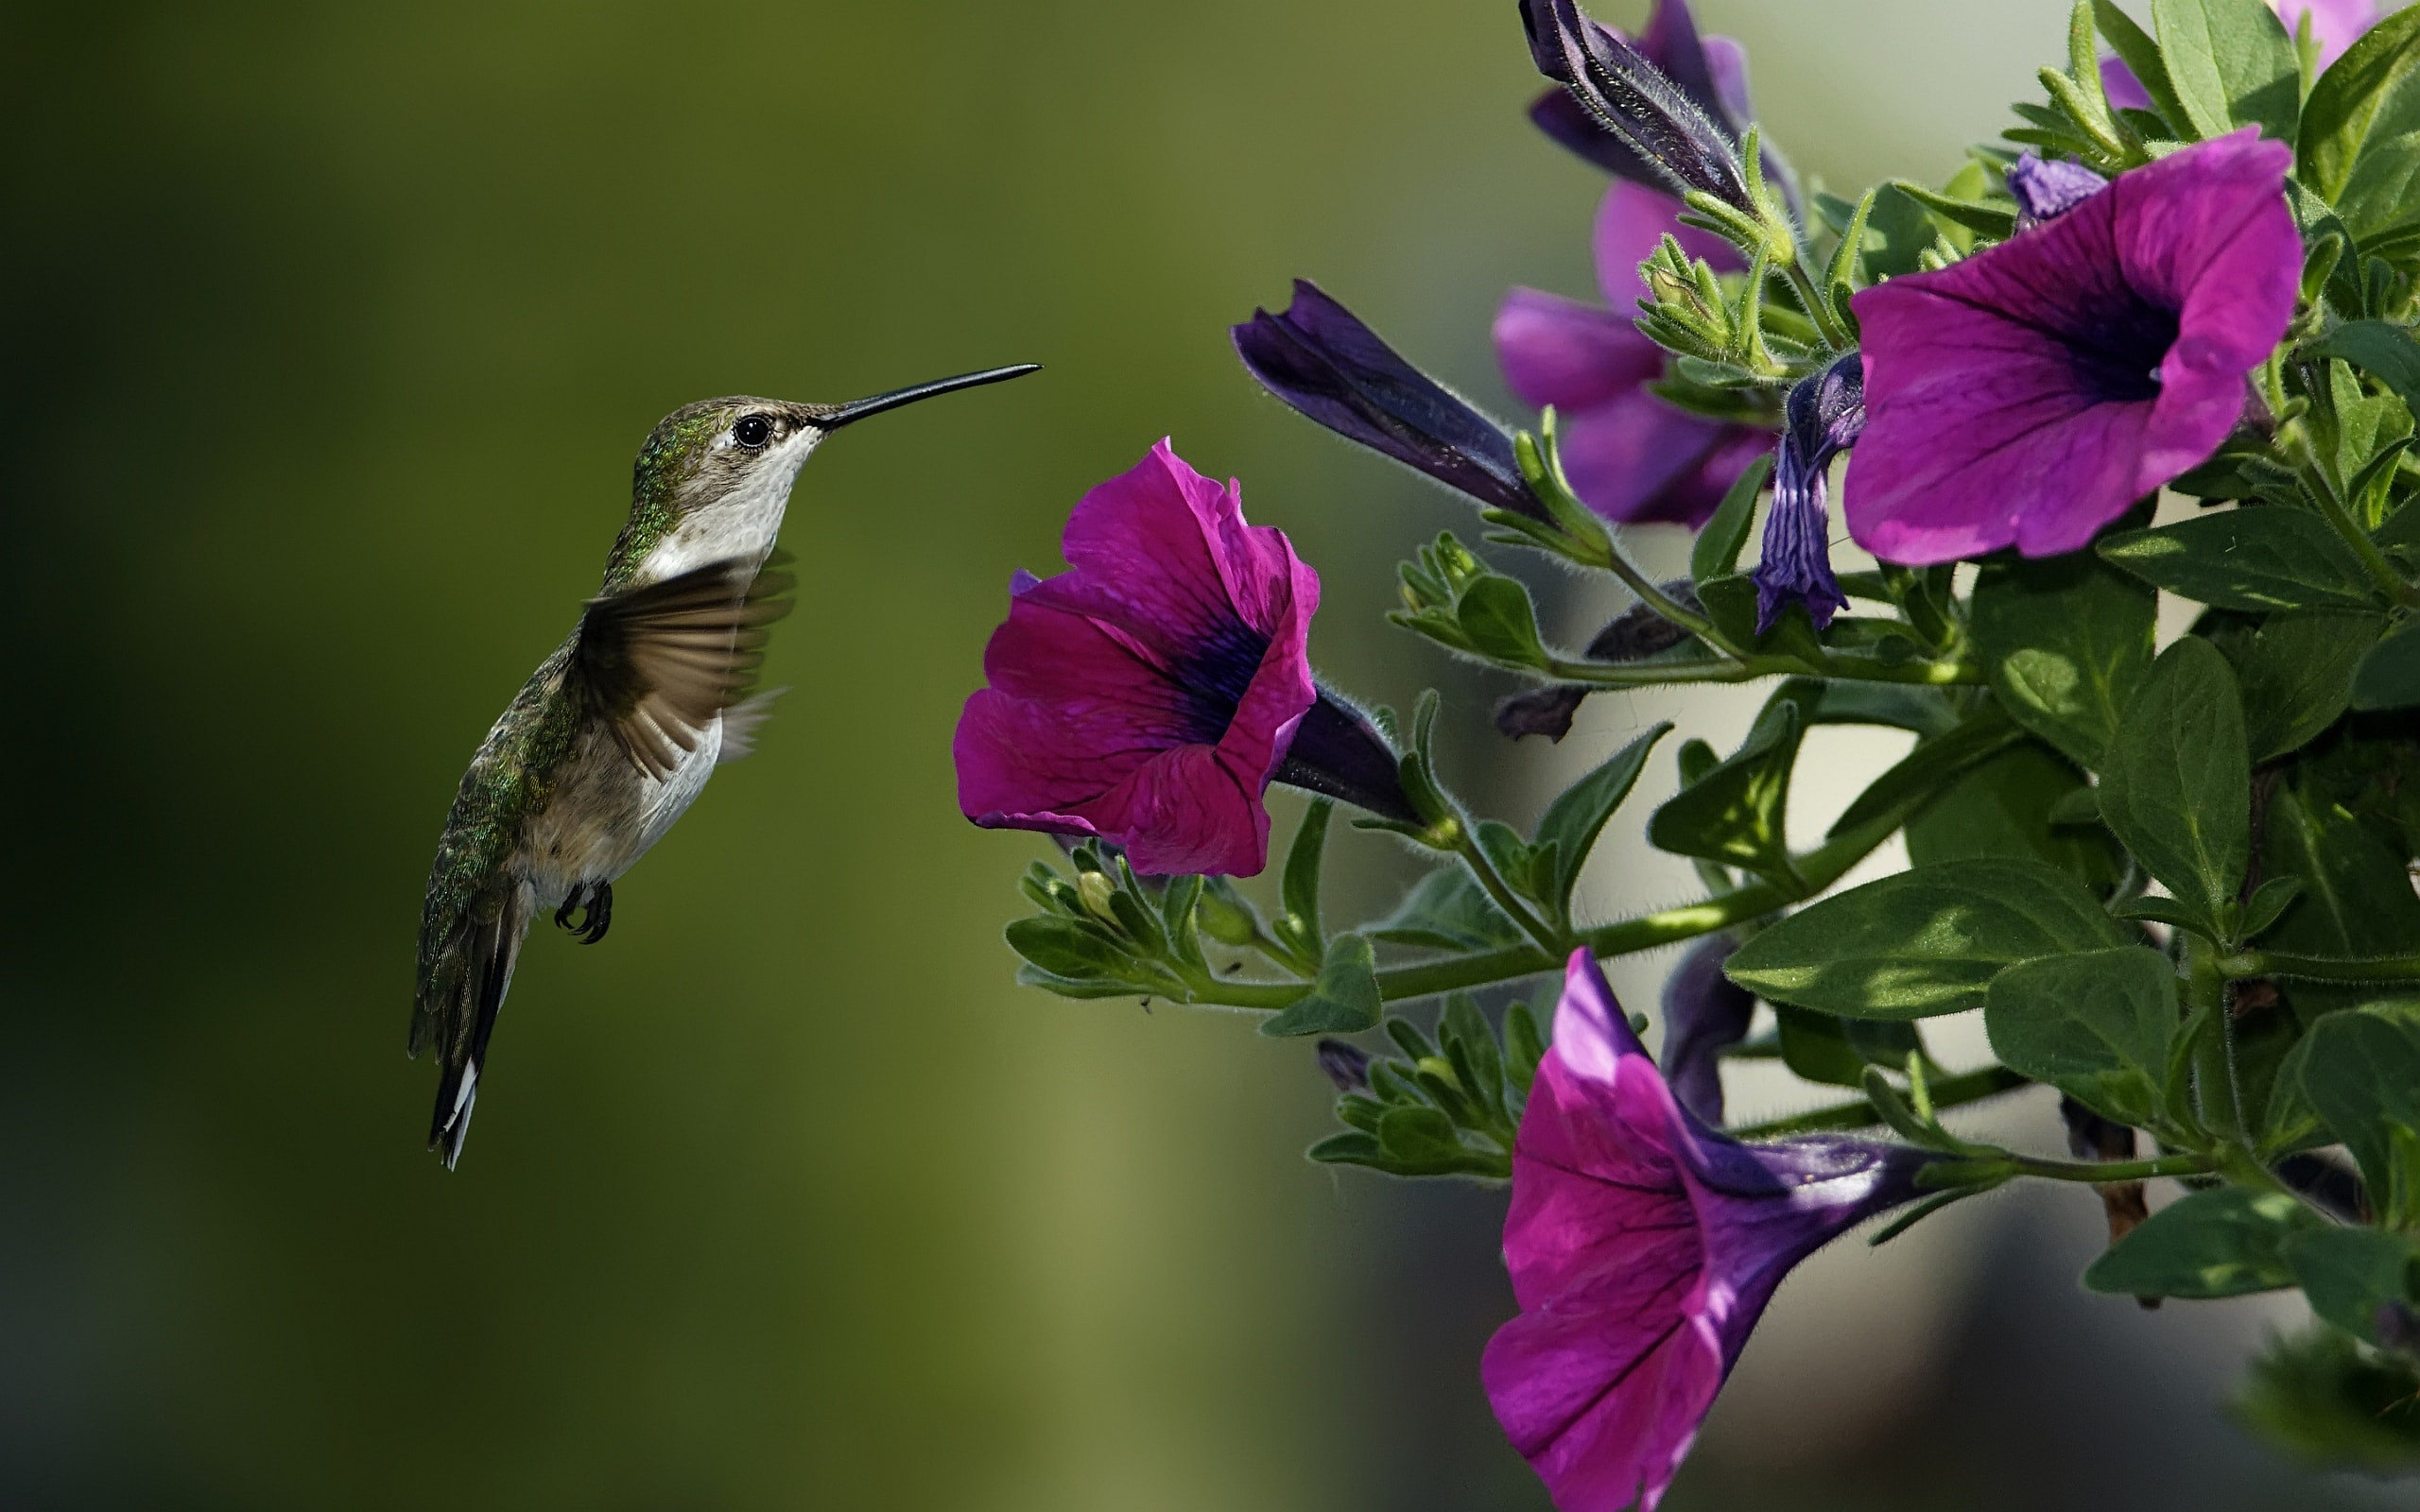 Colibri Desktop wallpapers